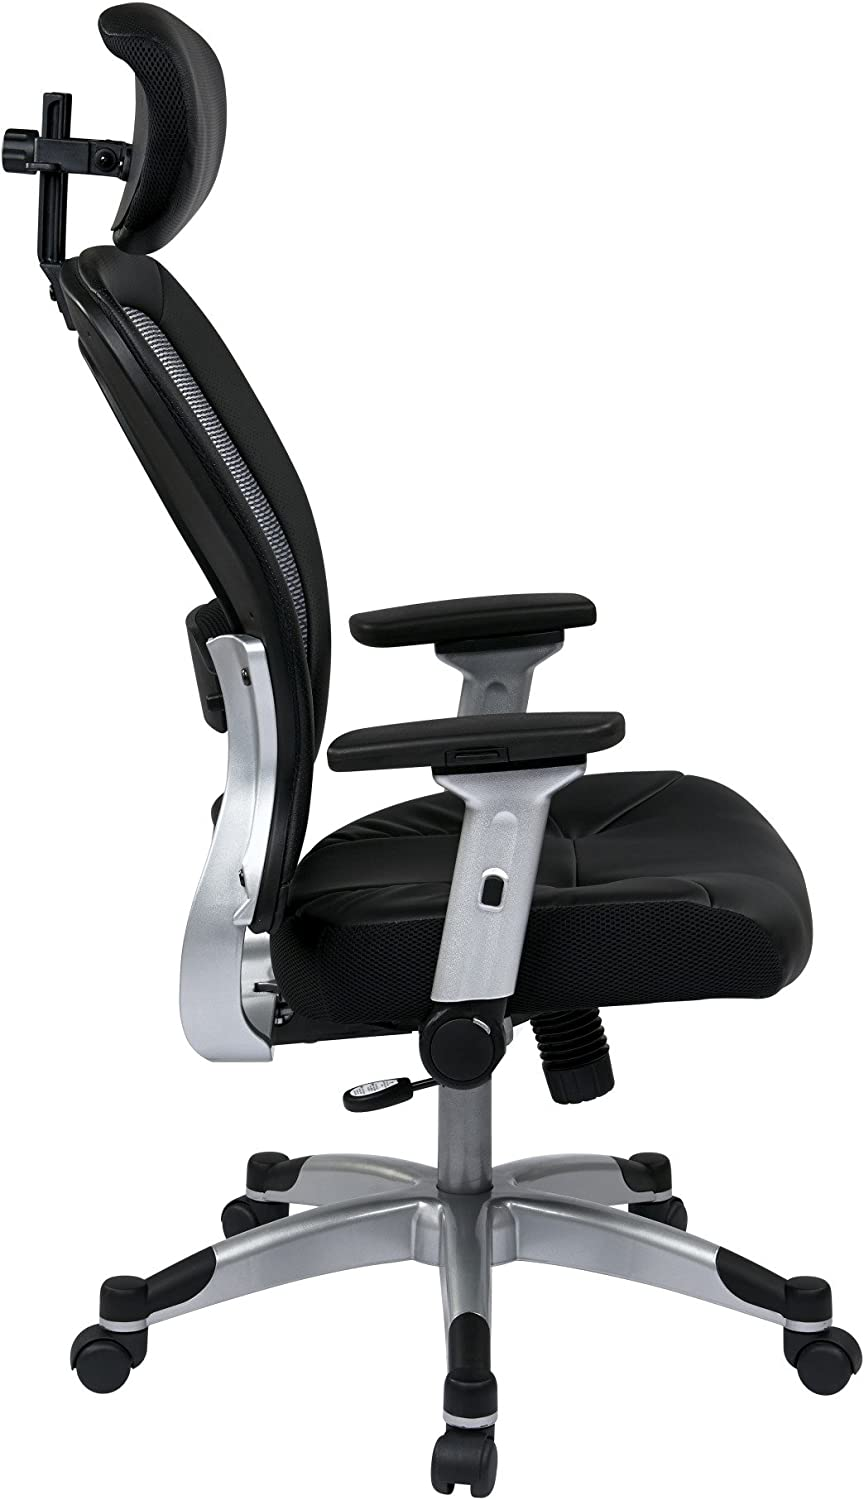 SPACE Seating Light Air Grid Back and Eco Leather Seat Base Managers Chair with Adjustable Headrest Black